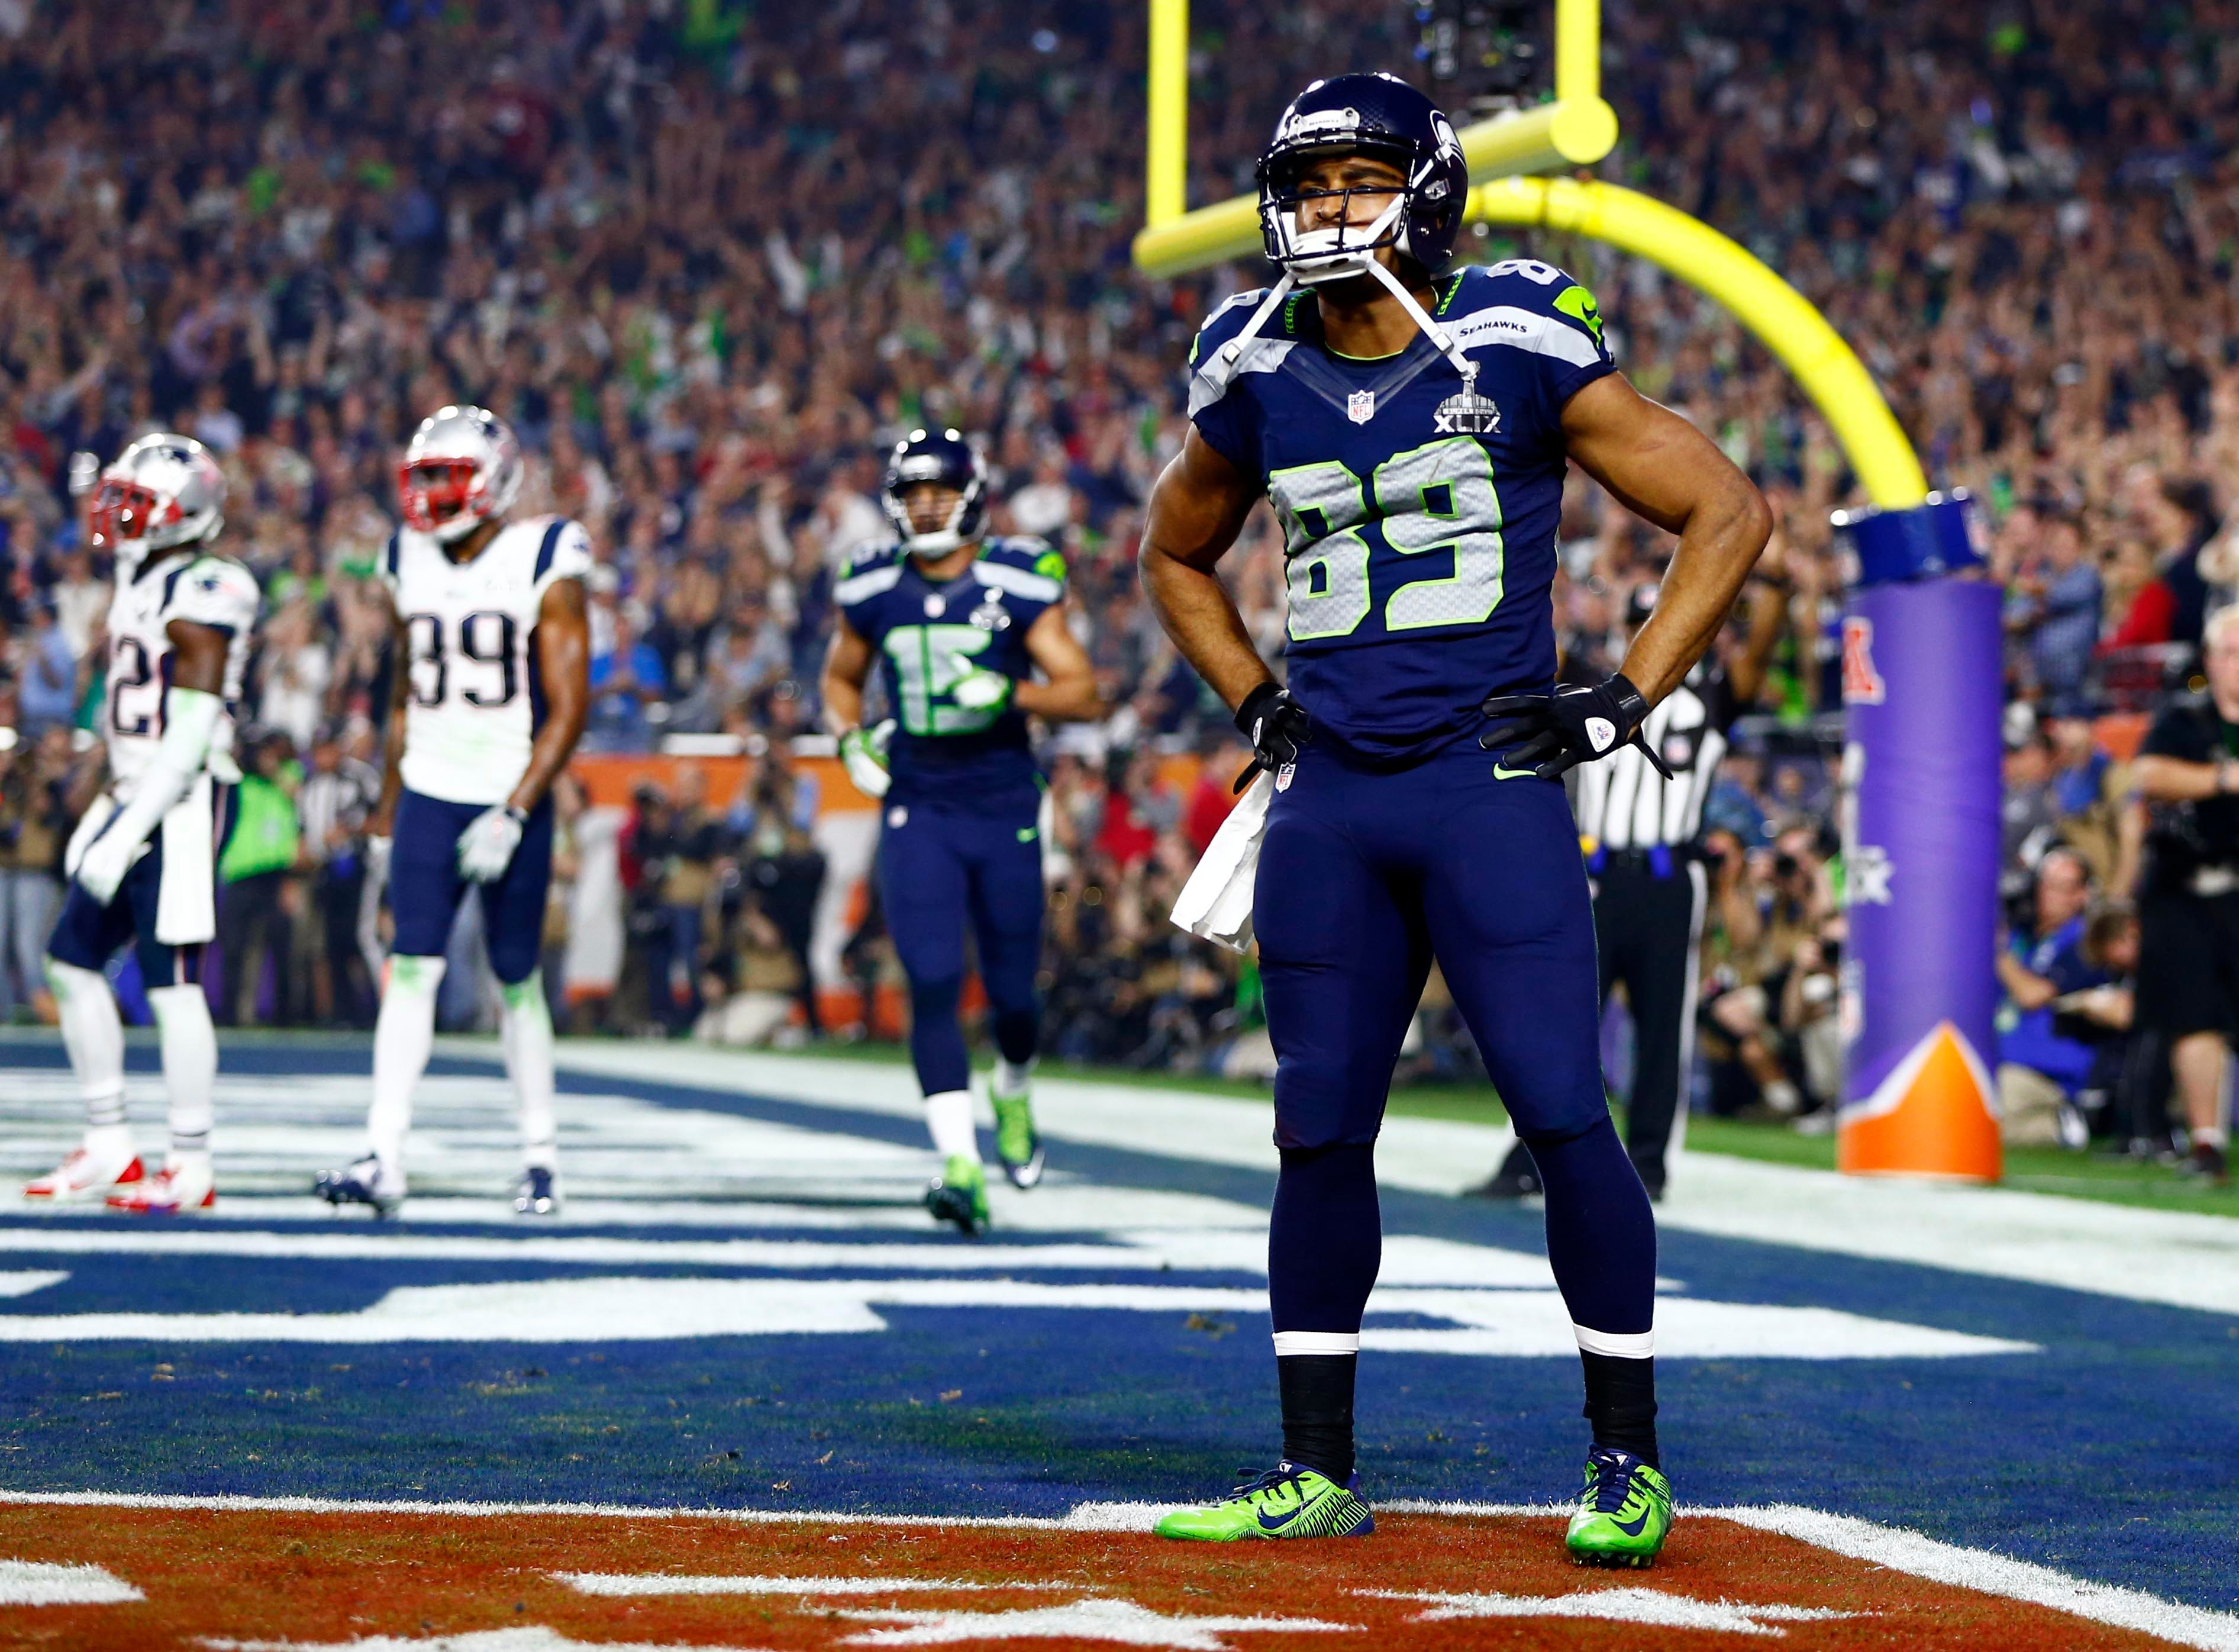 Seahawks WR Doug Baldwin weighing retirement amid injuries